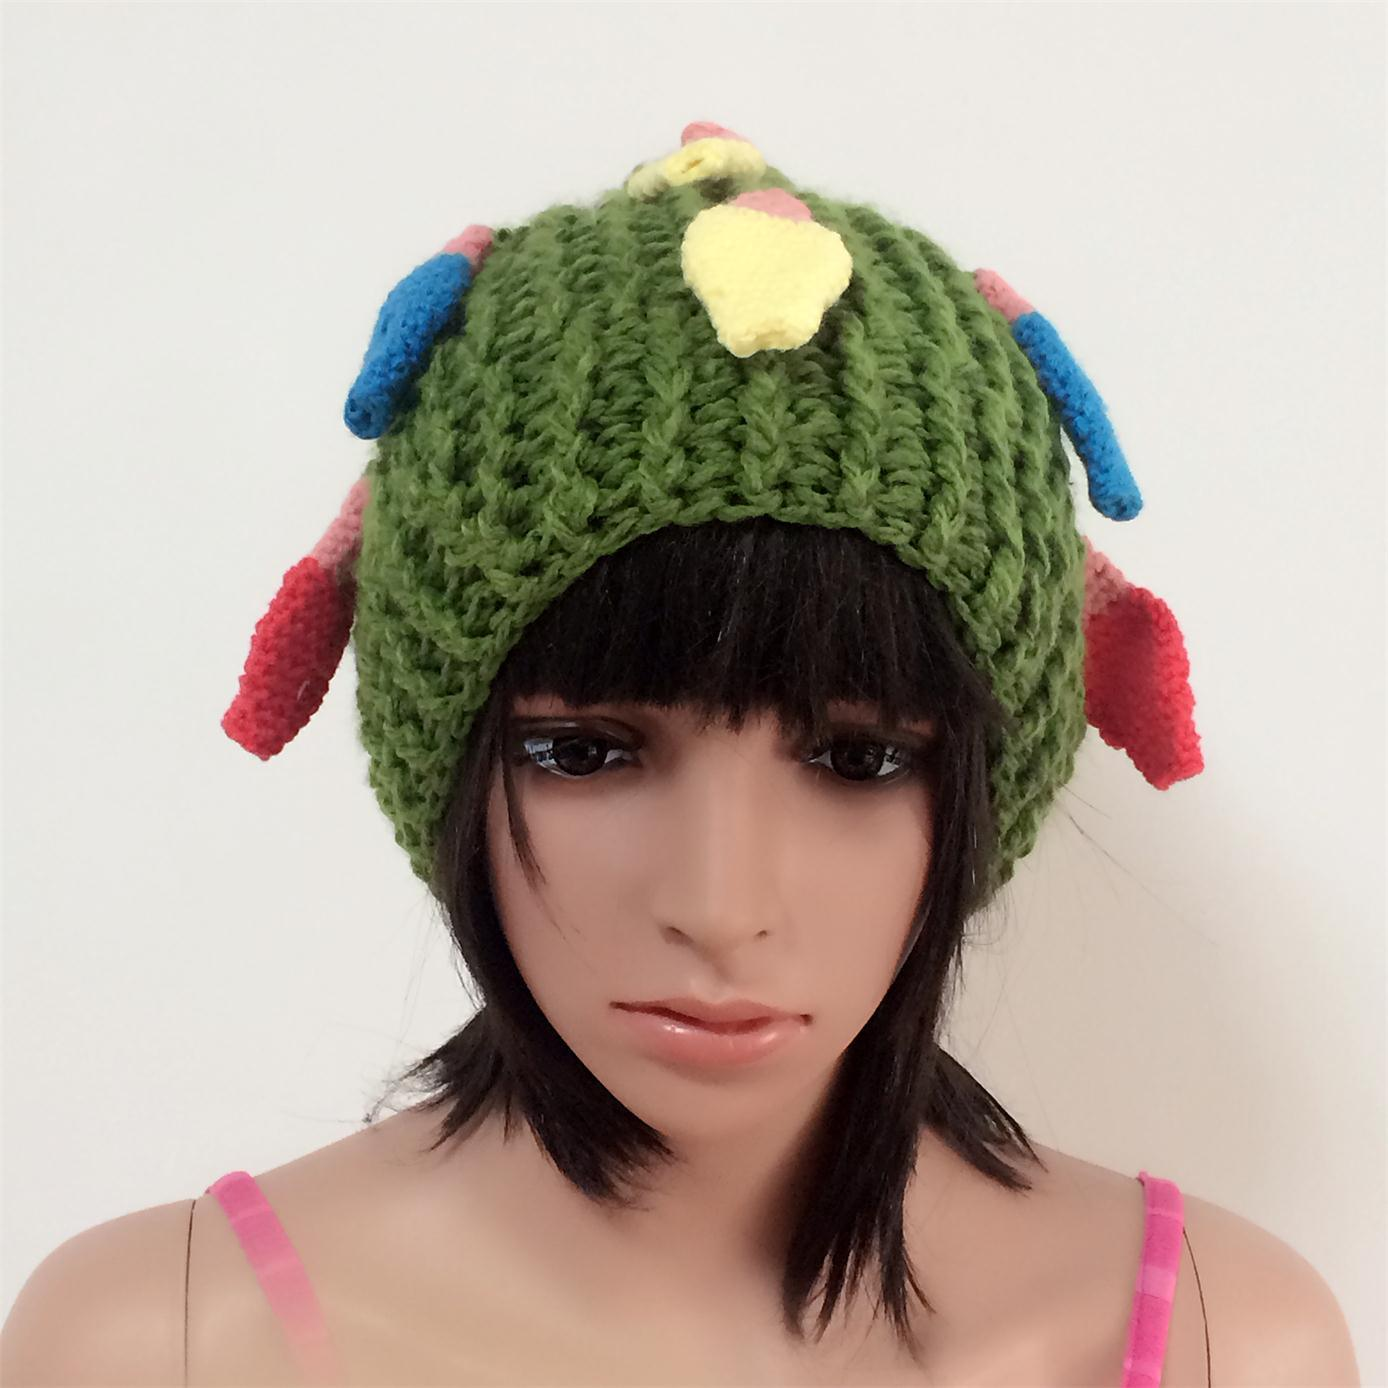 a26f6f77a [Hot Item] 100% Iceland Wool, Hand Made Fashion Crocheted Hats with  Decoration